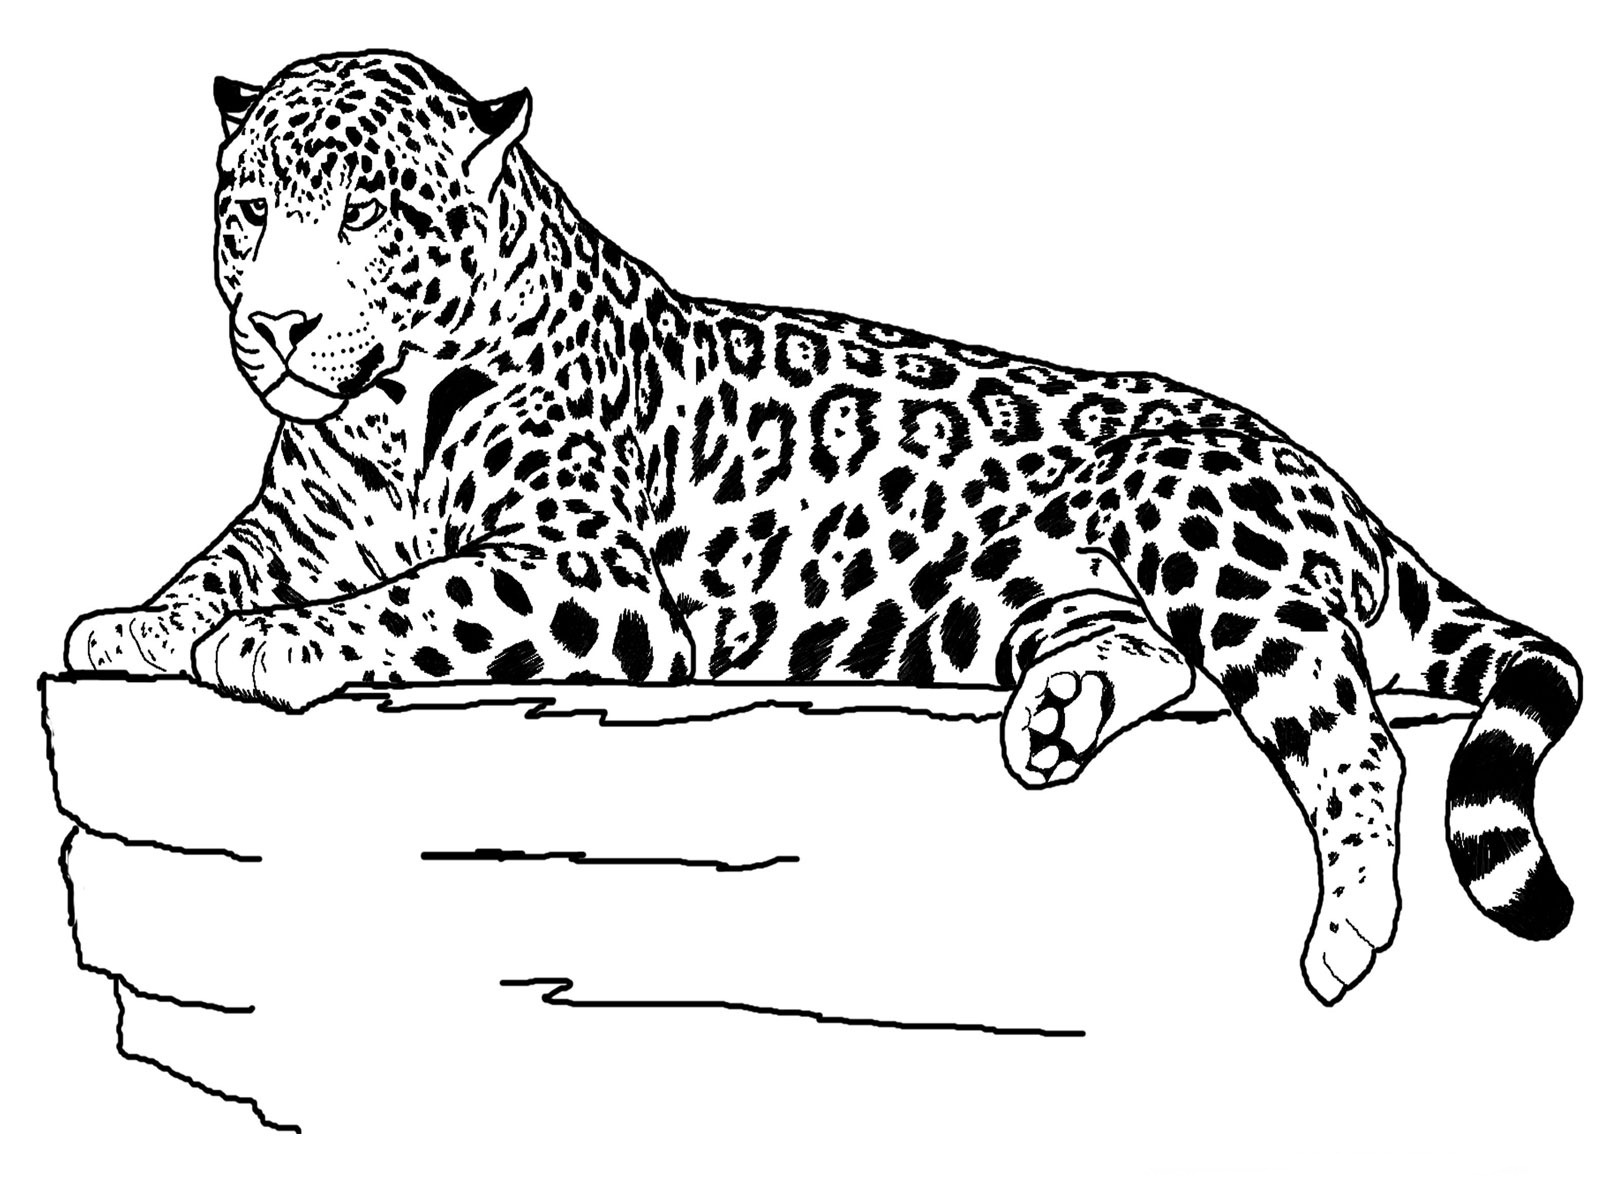 animal coloring pages 16 furthermore 52c5b1e116e3c further mbu2h8x additionally a53b4c1cb38b27bf4aa2549ff7642b9b also  as well coloriage rayman origins 10604 additionally pl pirates cs01 together with 63234 21 as well  moreover  moreover . on pirates coloring pages for kids